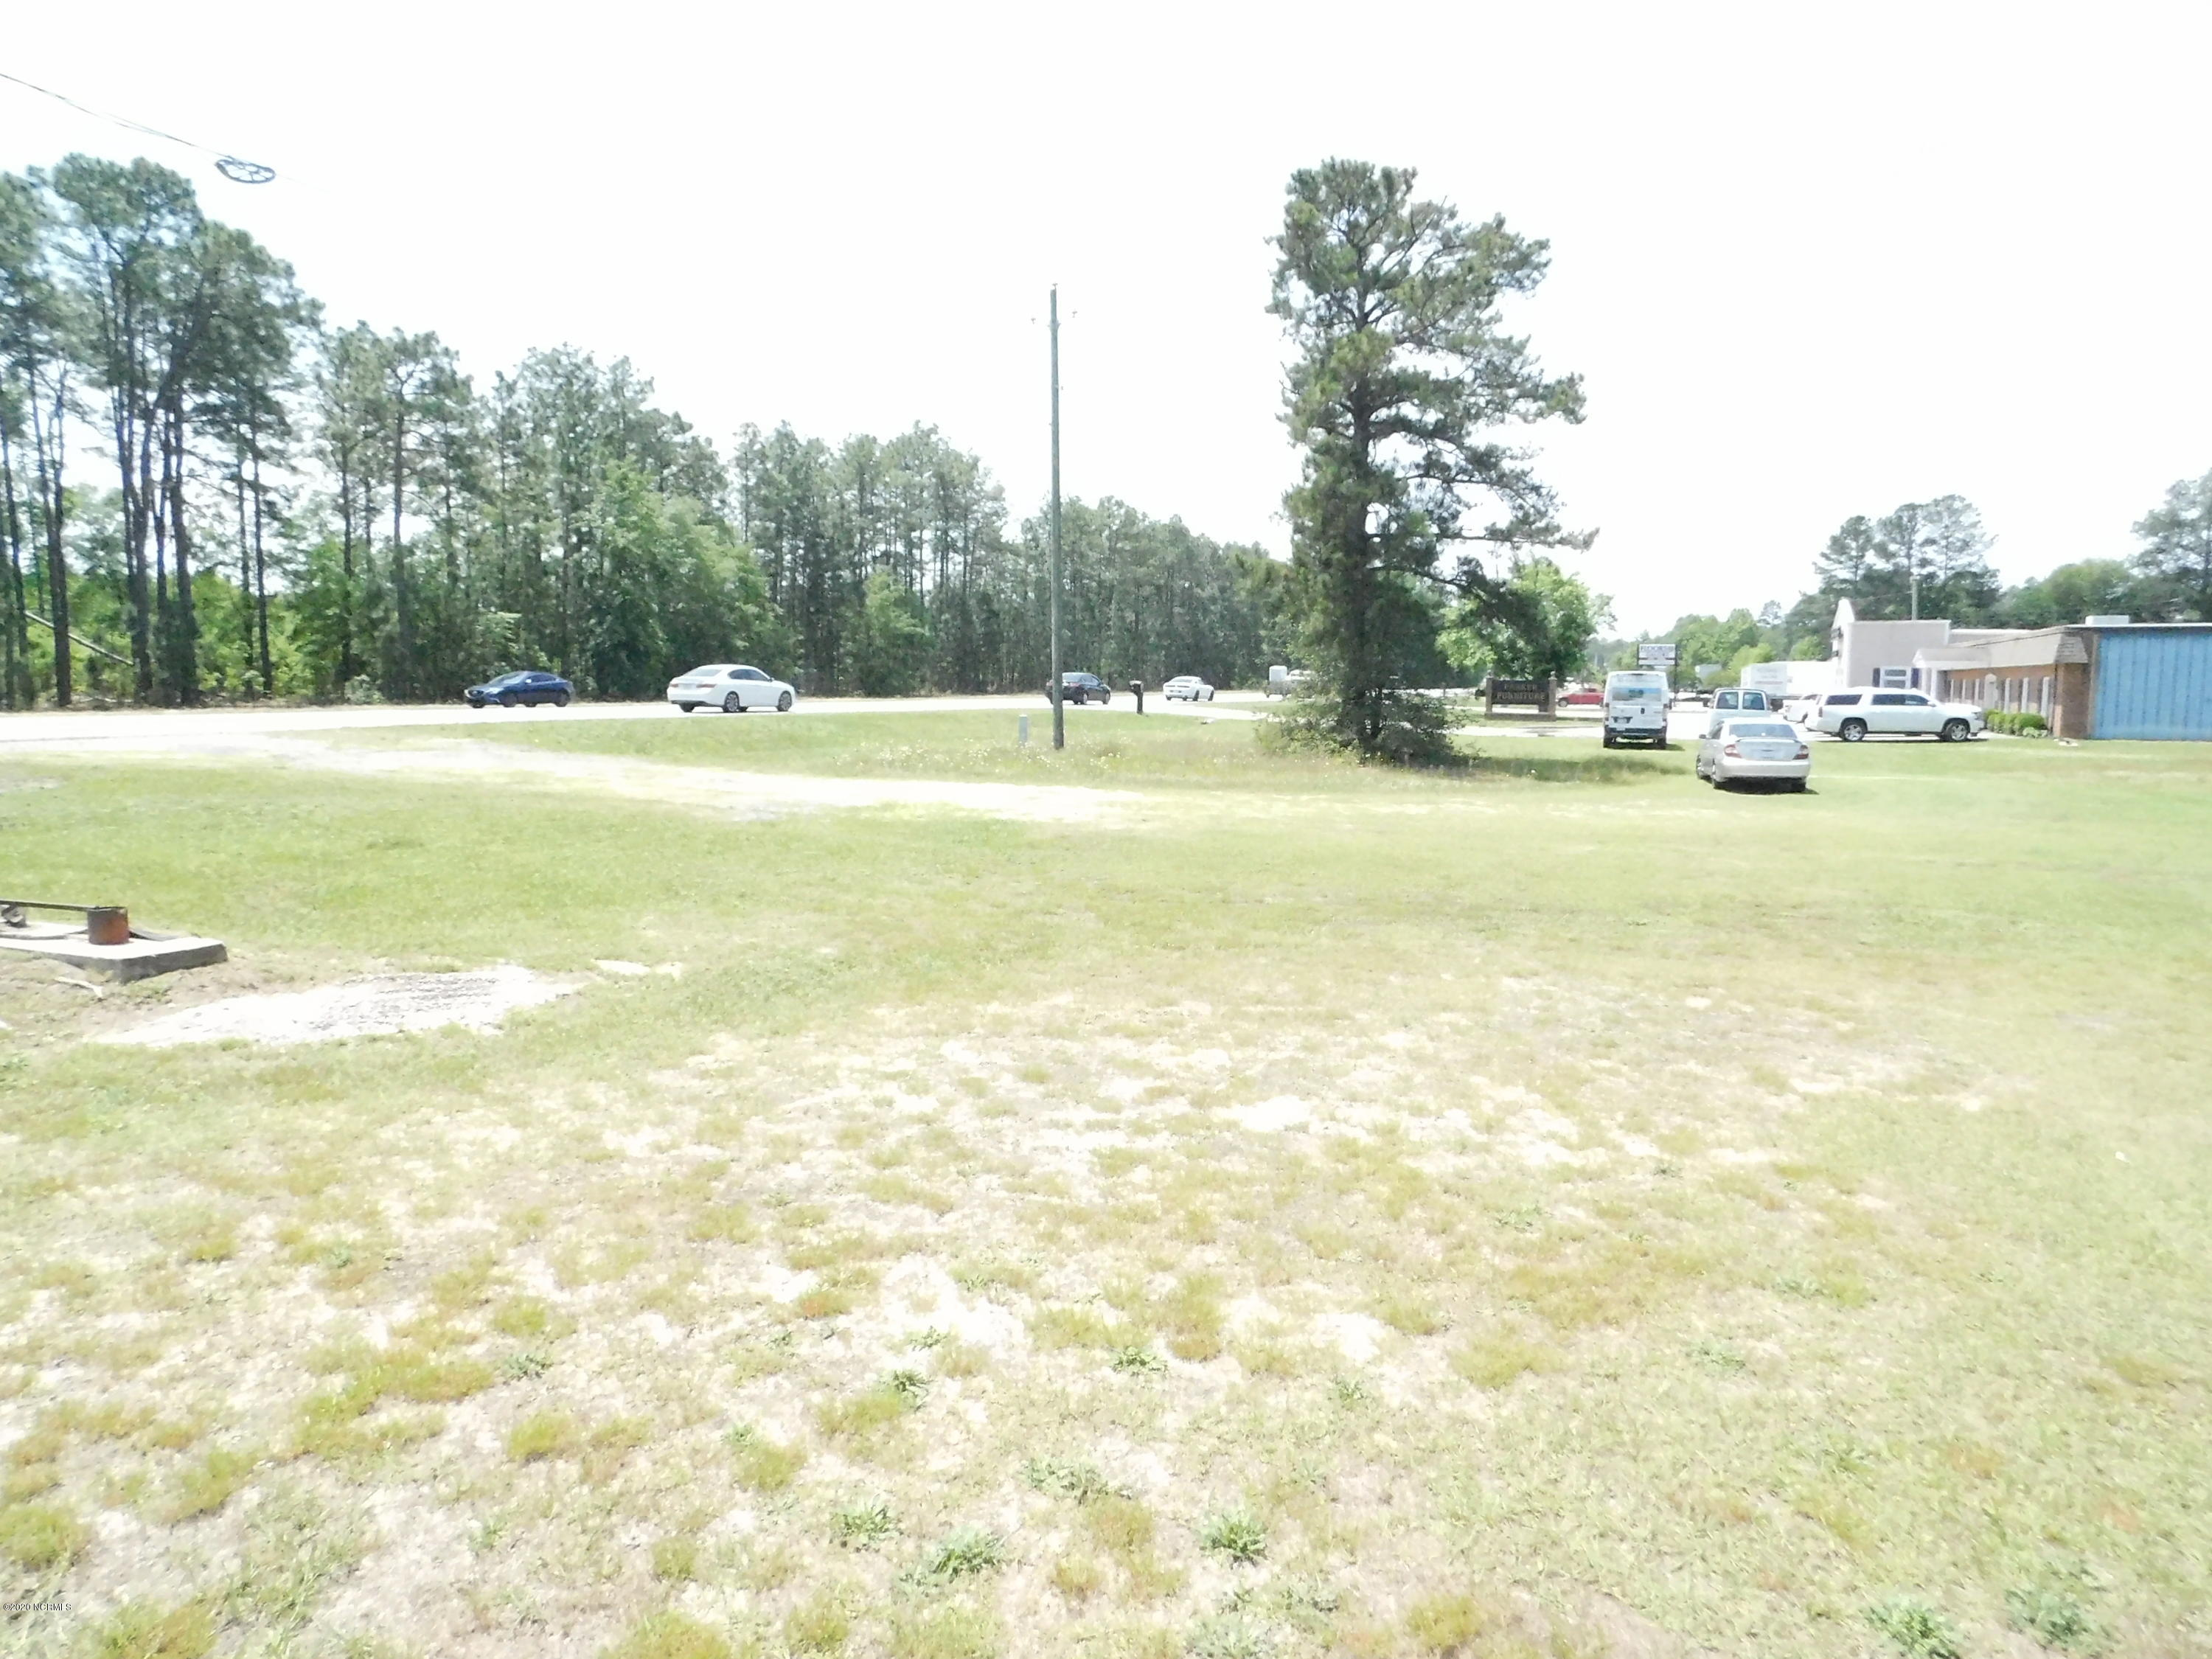 12460 Us Hwy 15/401 South Road, Laurinburg, North Carolina 28352, ,Undeveloped,For sale,Us Hwy 15/401 South,96036714